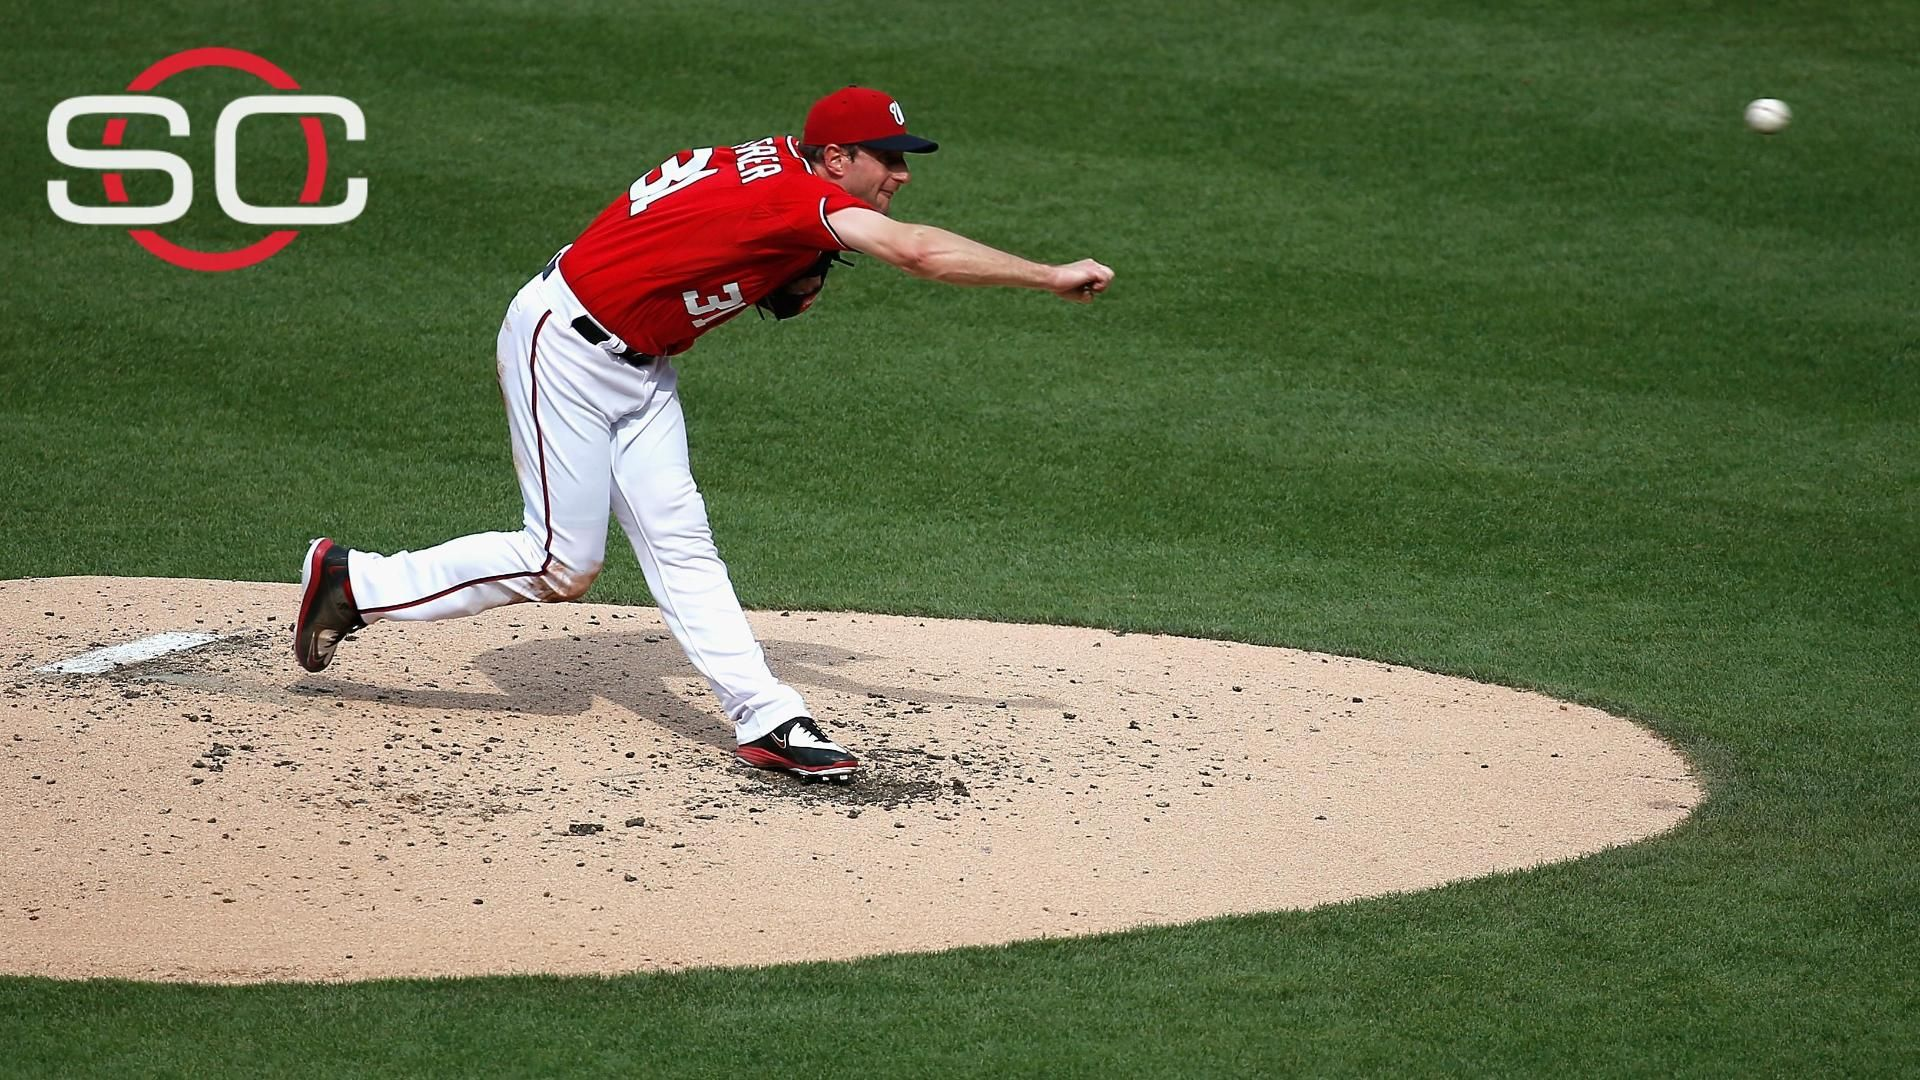 Max Scherzer tops 16-strkeout one-hitter with no-hitter ...